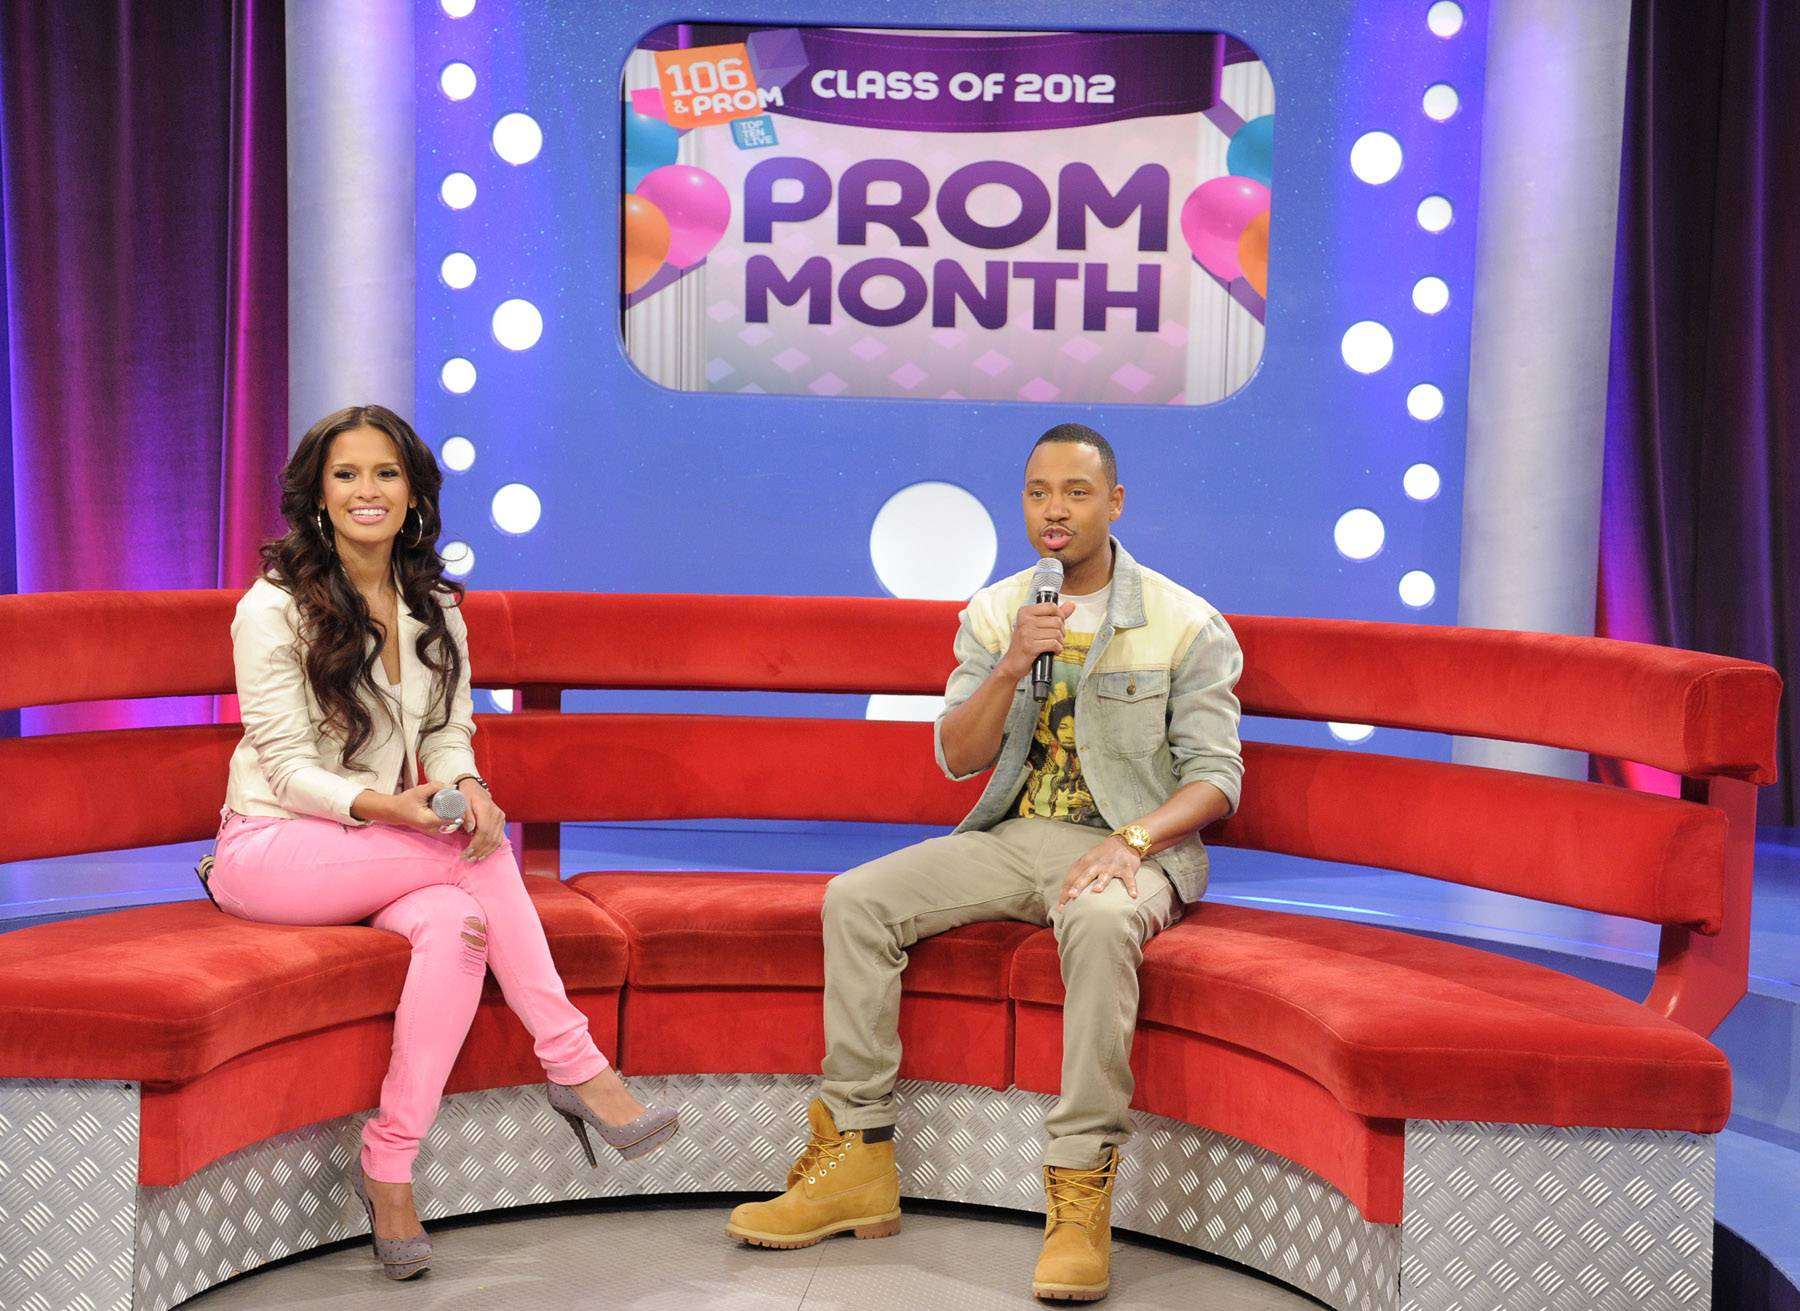 Terrence is talking to the crowd. - Rocsi Diaz and Terrence J prepare for the Prom Night fashion show at 106 & Park, May 16, 2012. (Photo: John Ricard / BET)